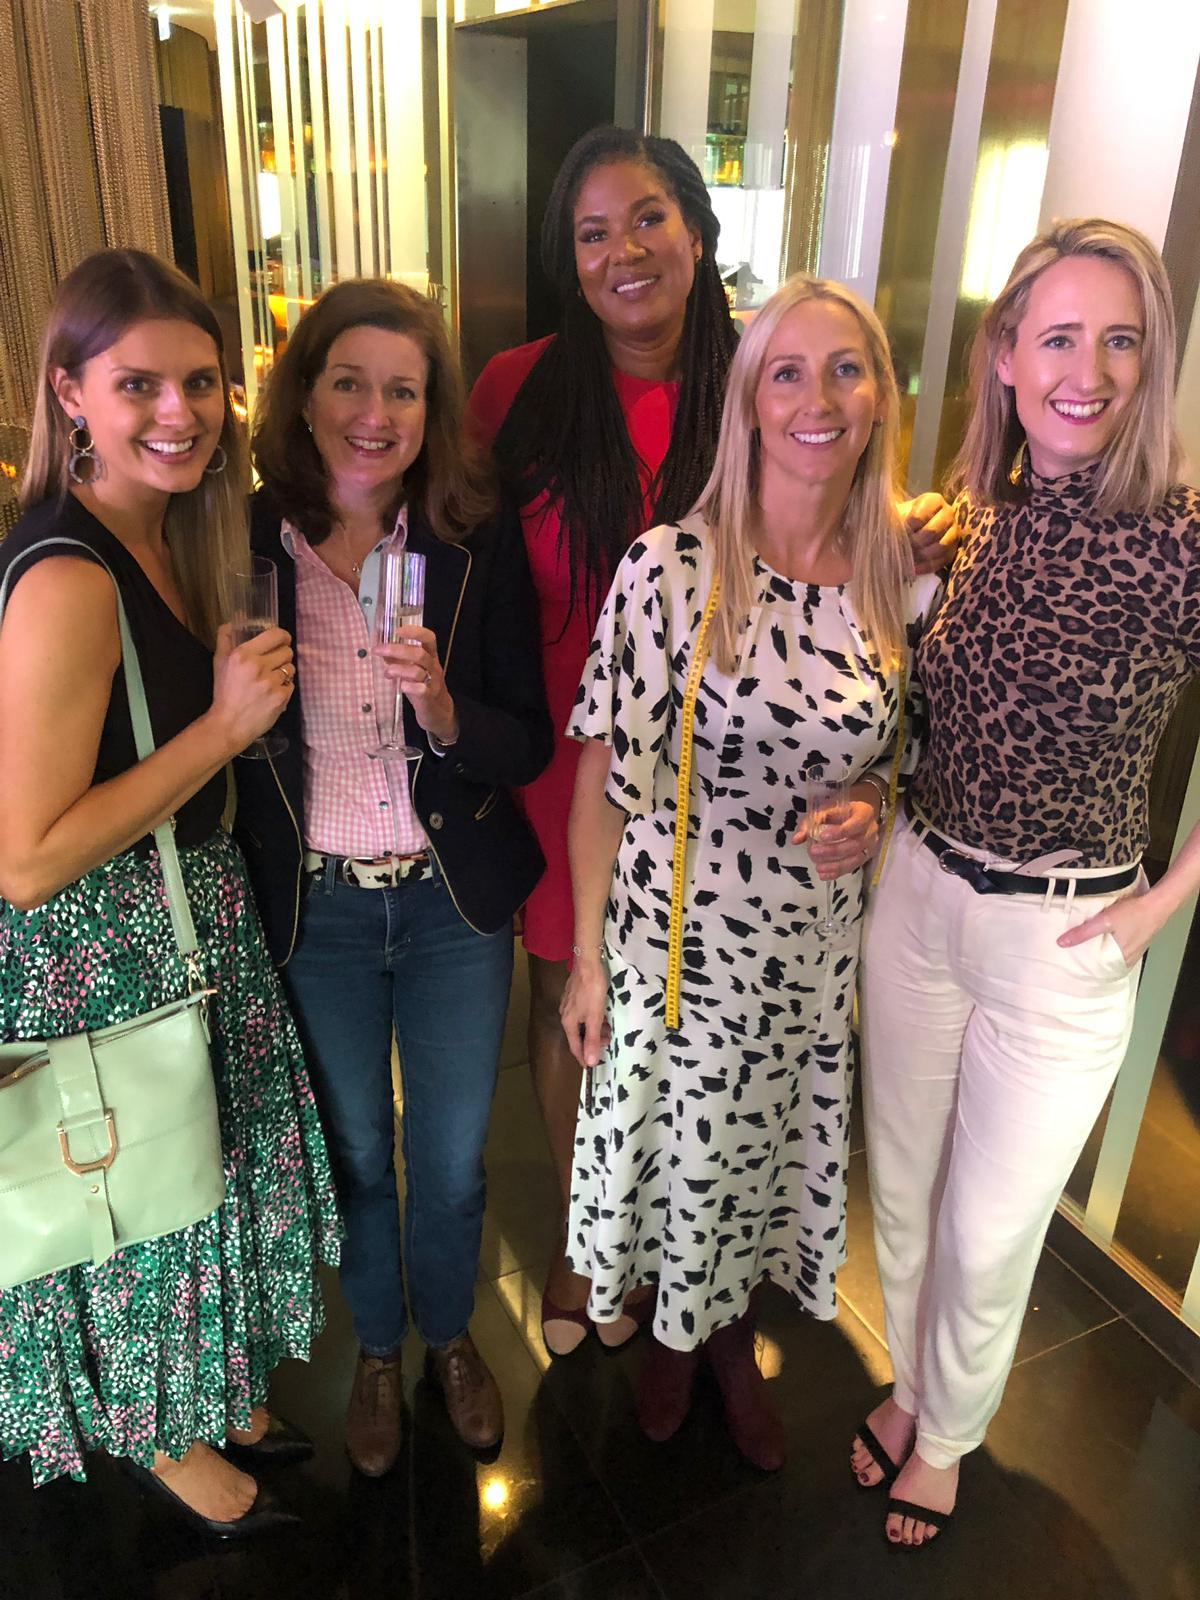 From l to r: Laura Schofield of All the Tall Things blog and Otto + Ivy shoes, Emma Stewart from Allta, Bree Wijnaar the Tall Society organizer, Joanna Scott from Low Heels and Natalie Matthews from Height of Fashion